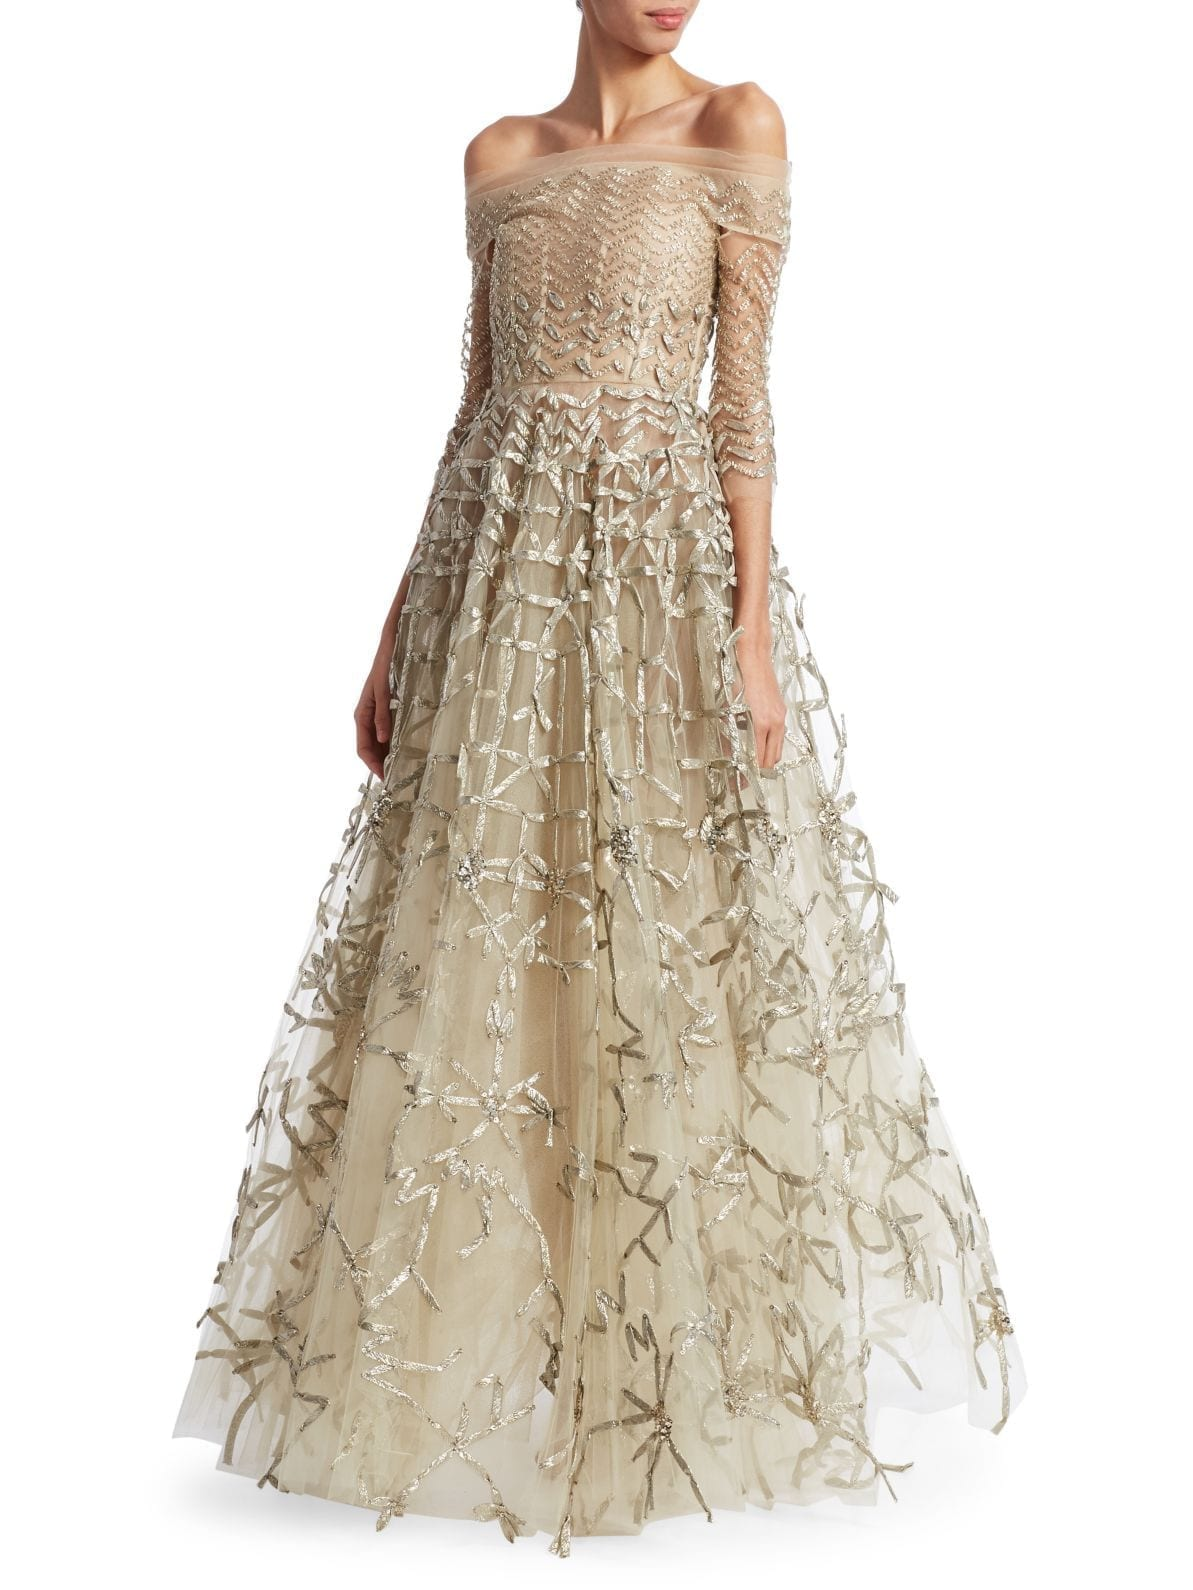 OSCAR DE LA RENTA Off-The-Shoulder Metallic Embroidery Mesh Ball Beige Gown